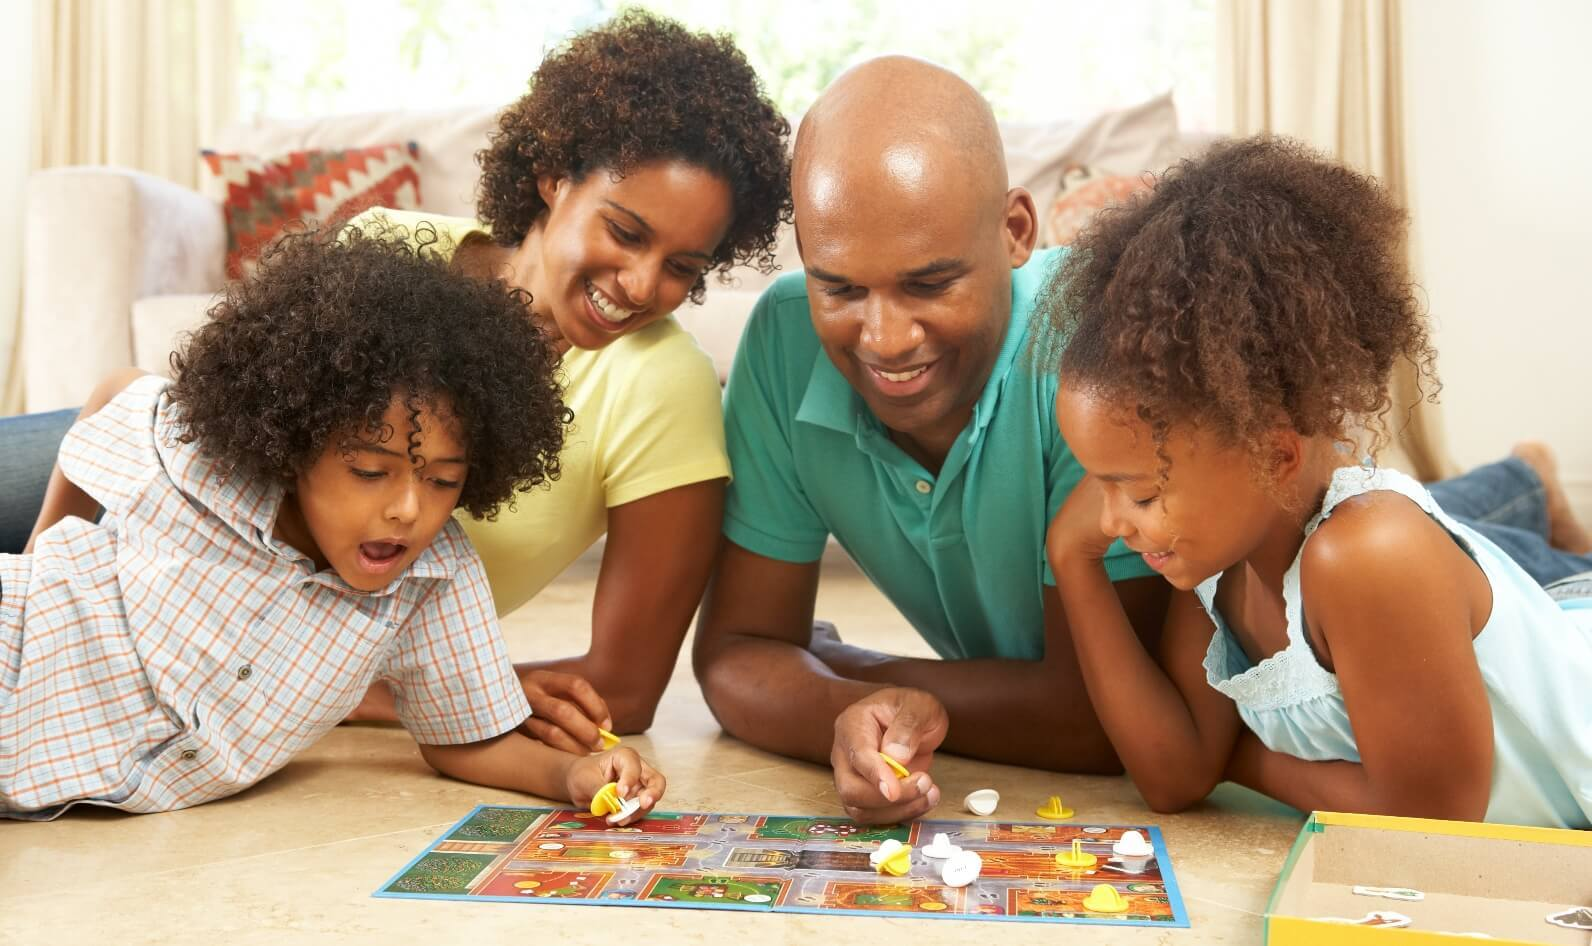 Bringing Back Family Game Night | Parenting Tips & Advice | PBS KIDS for Parents